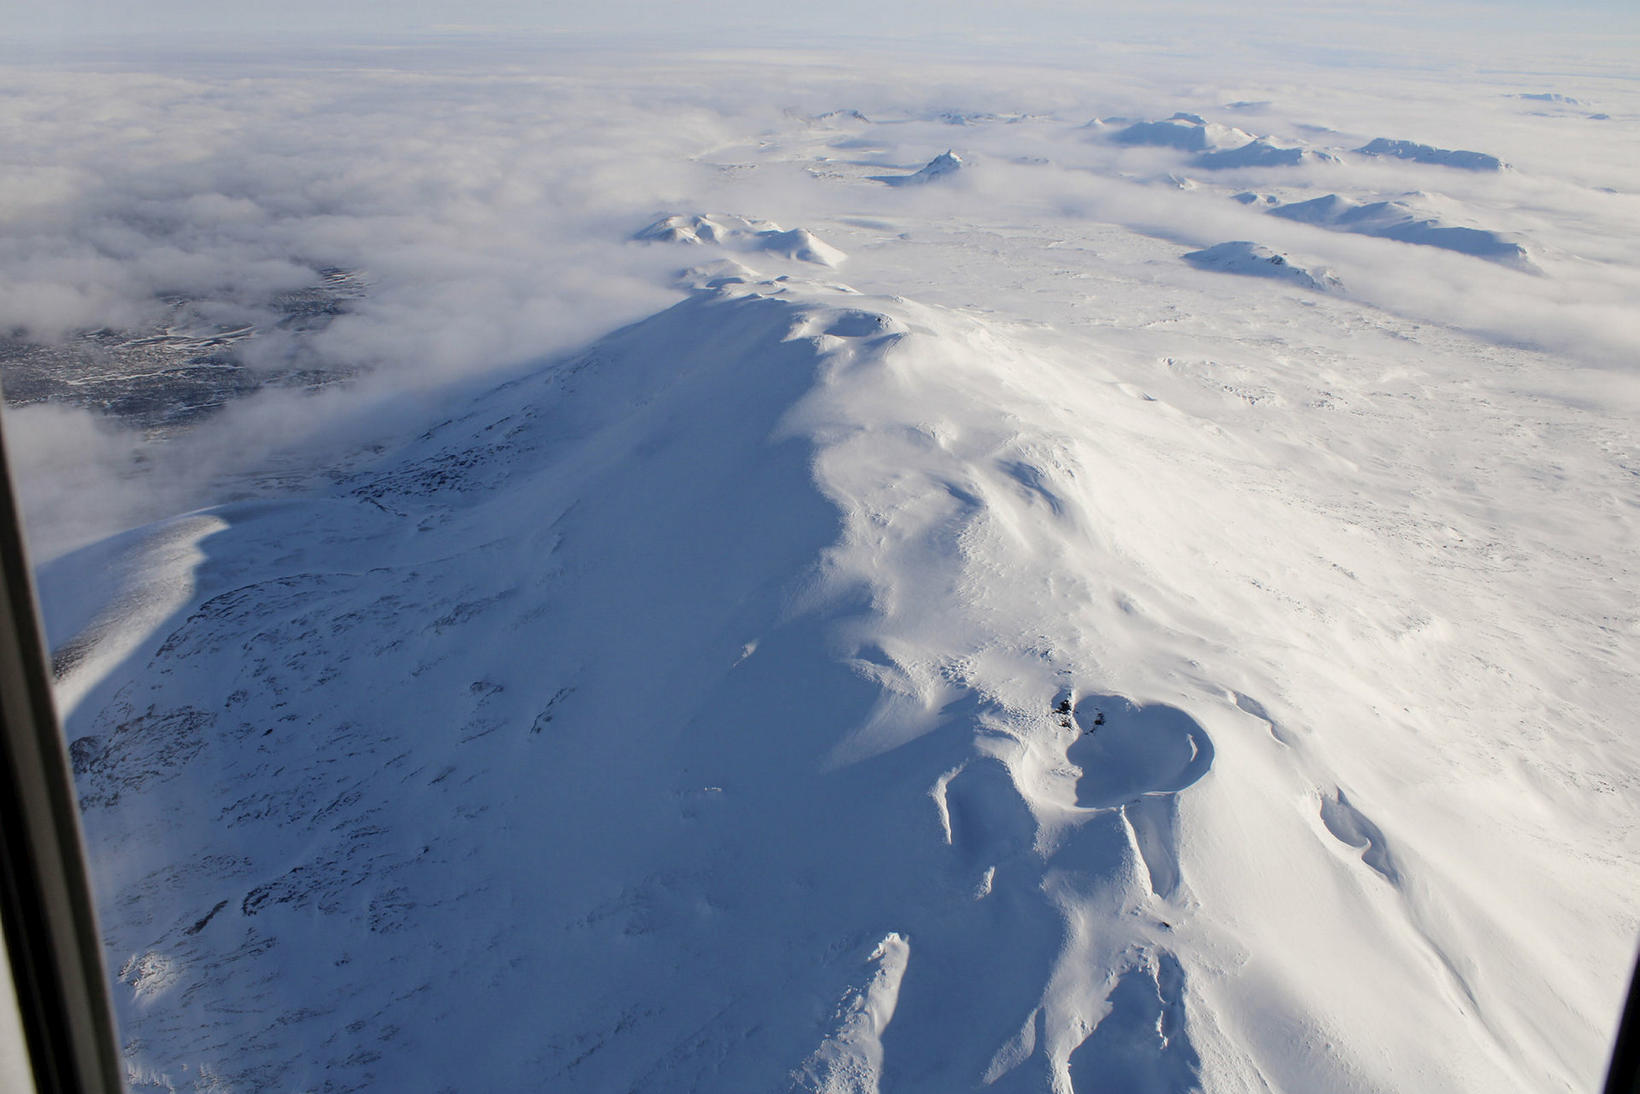 A view of Hekla volcano and its crater.